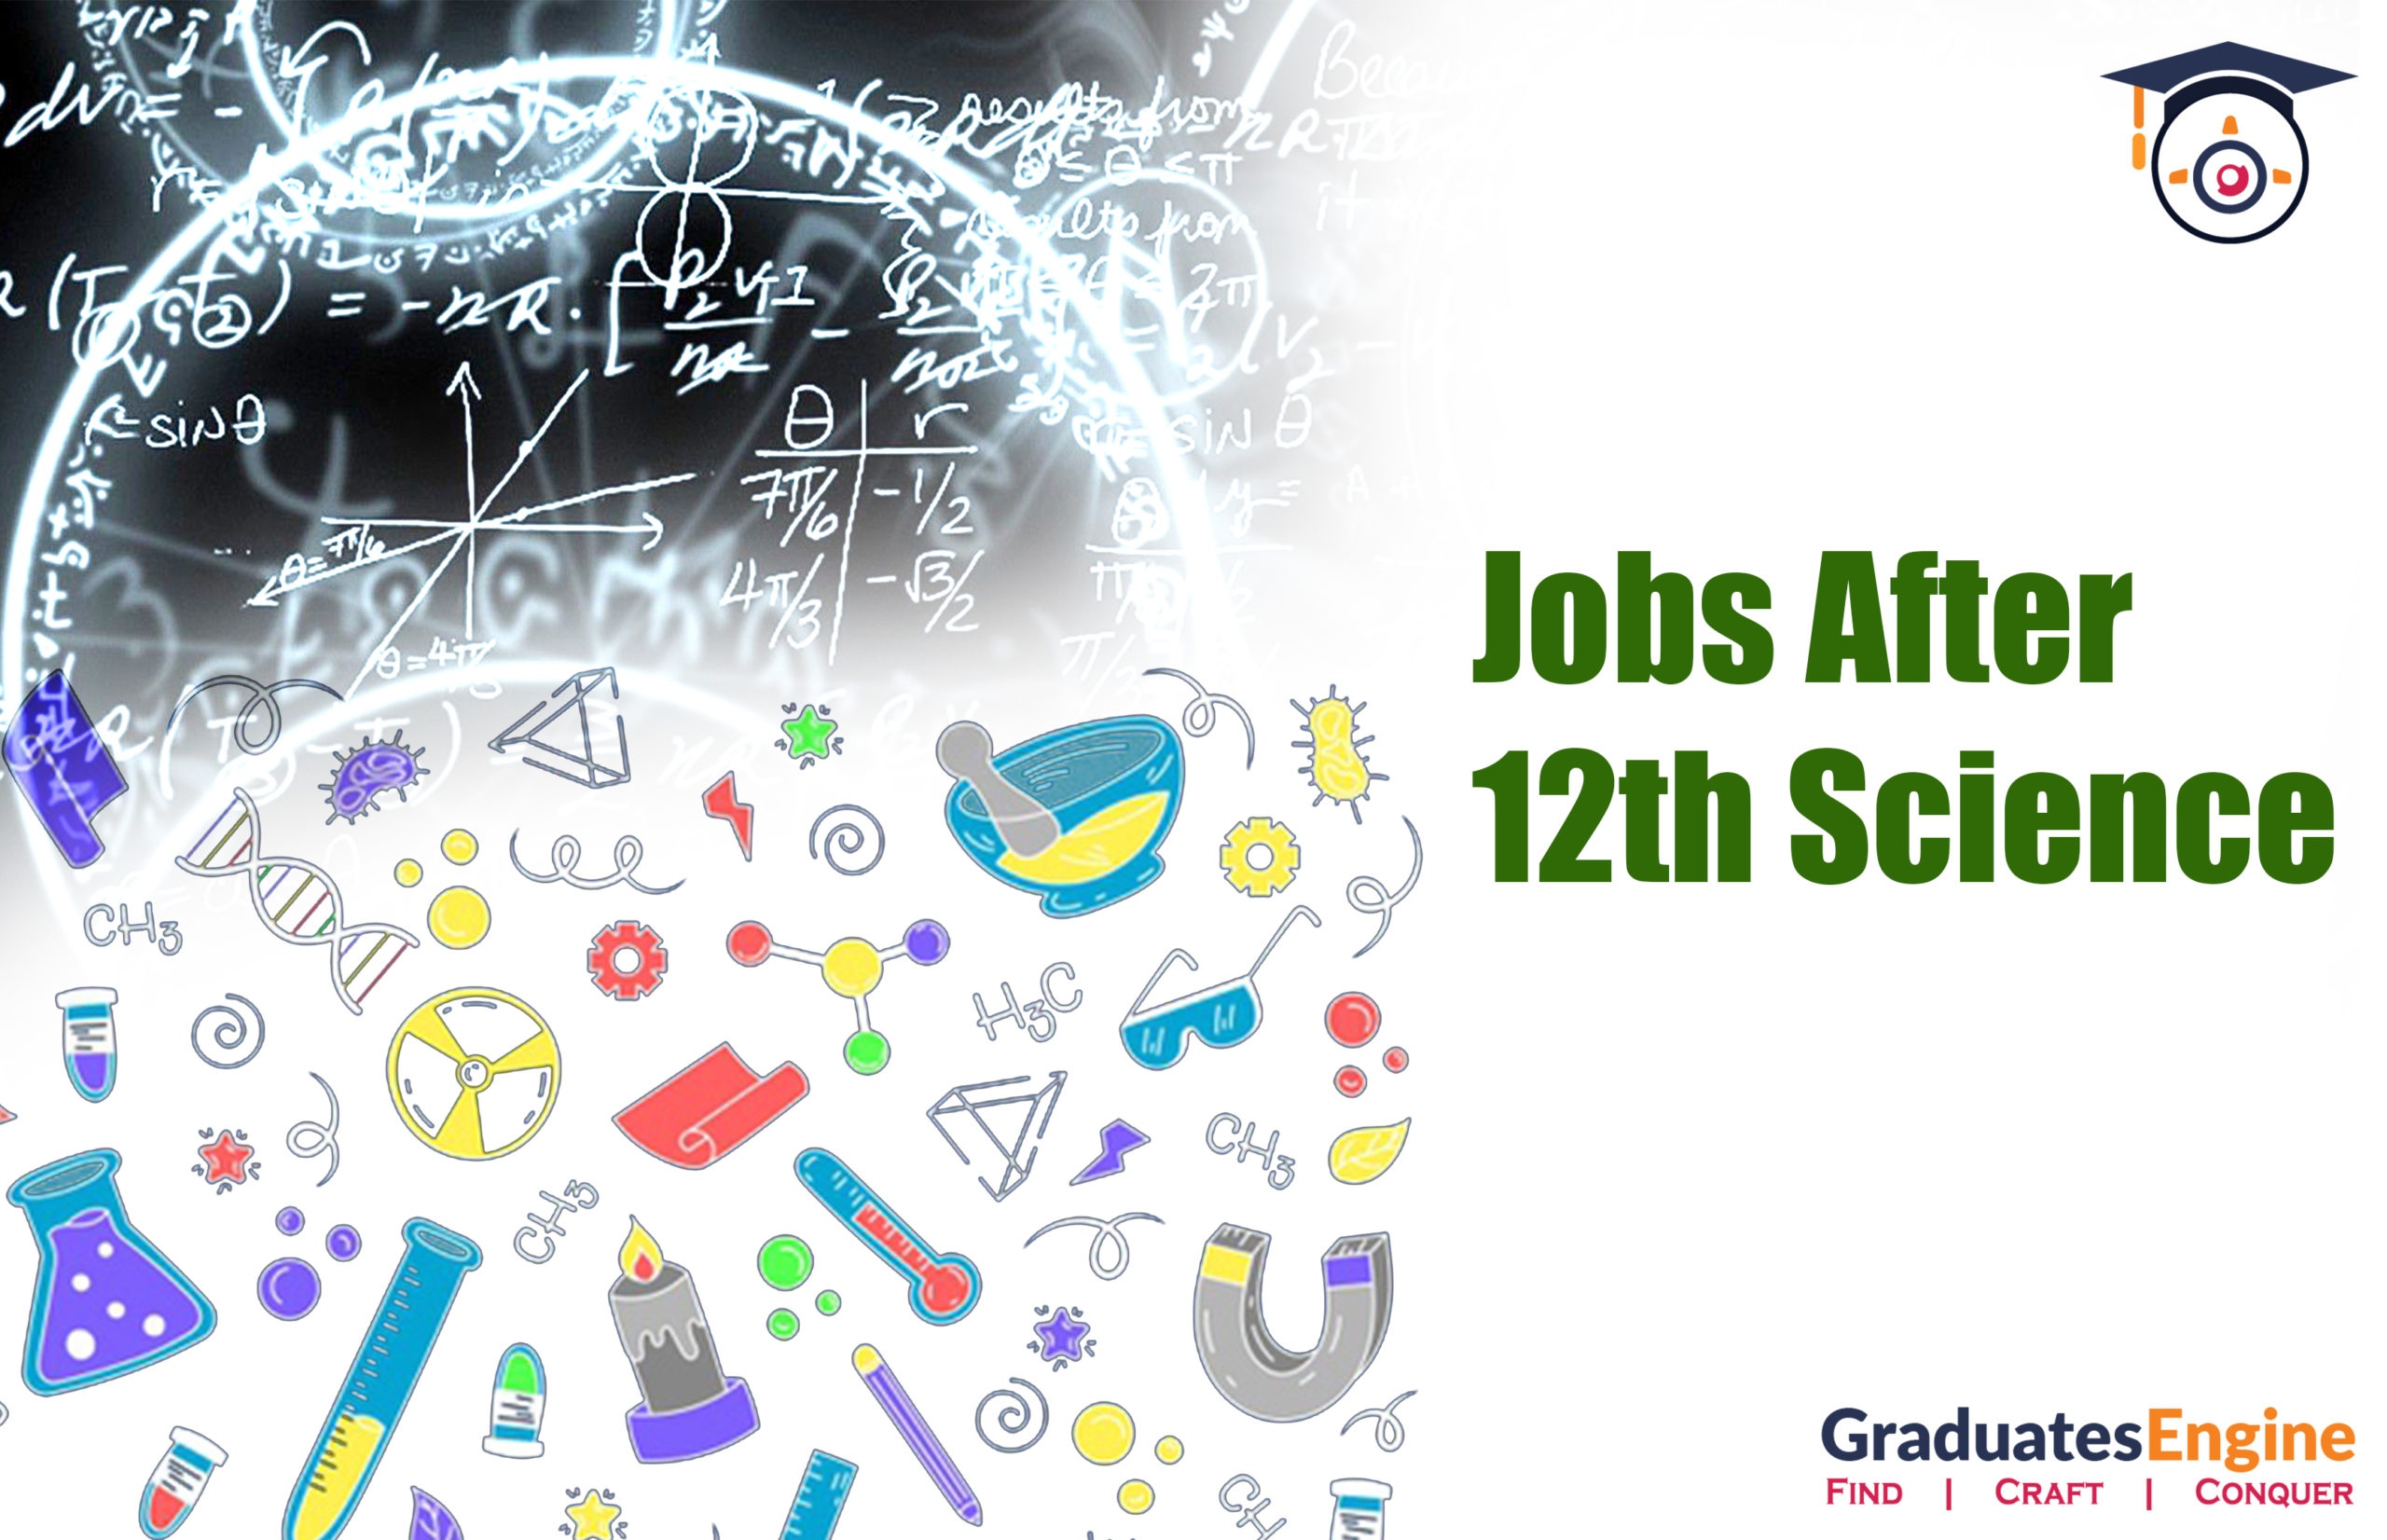 Jobs After 12th Science